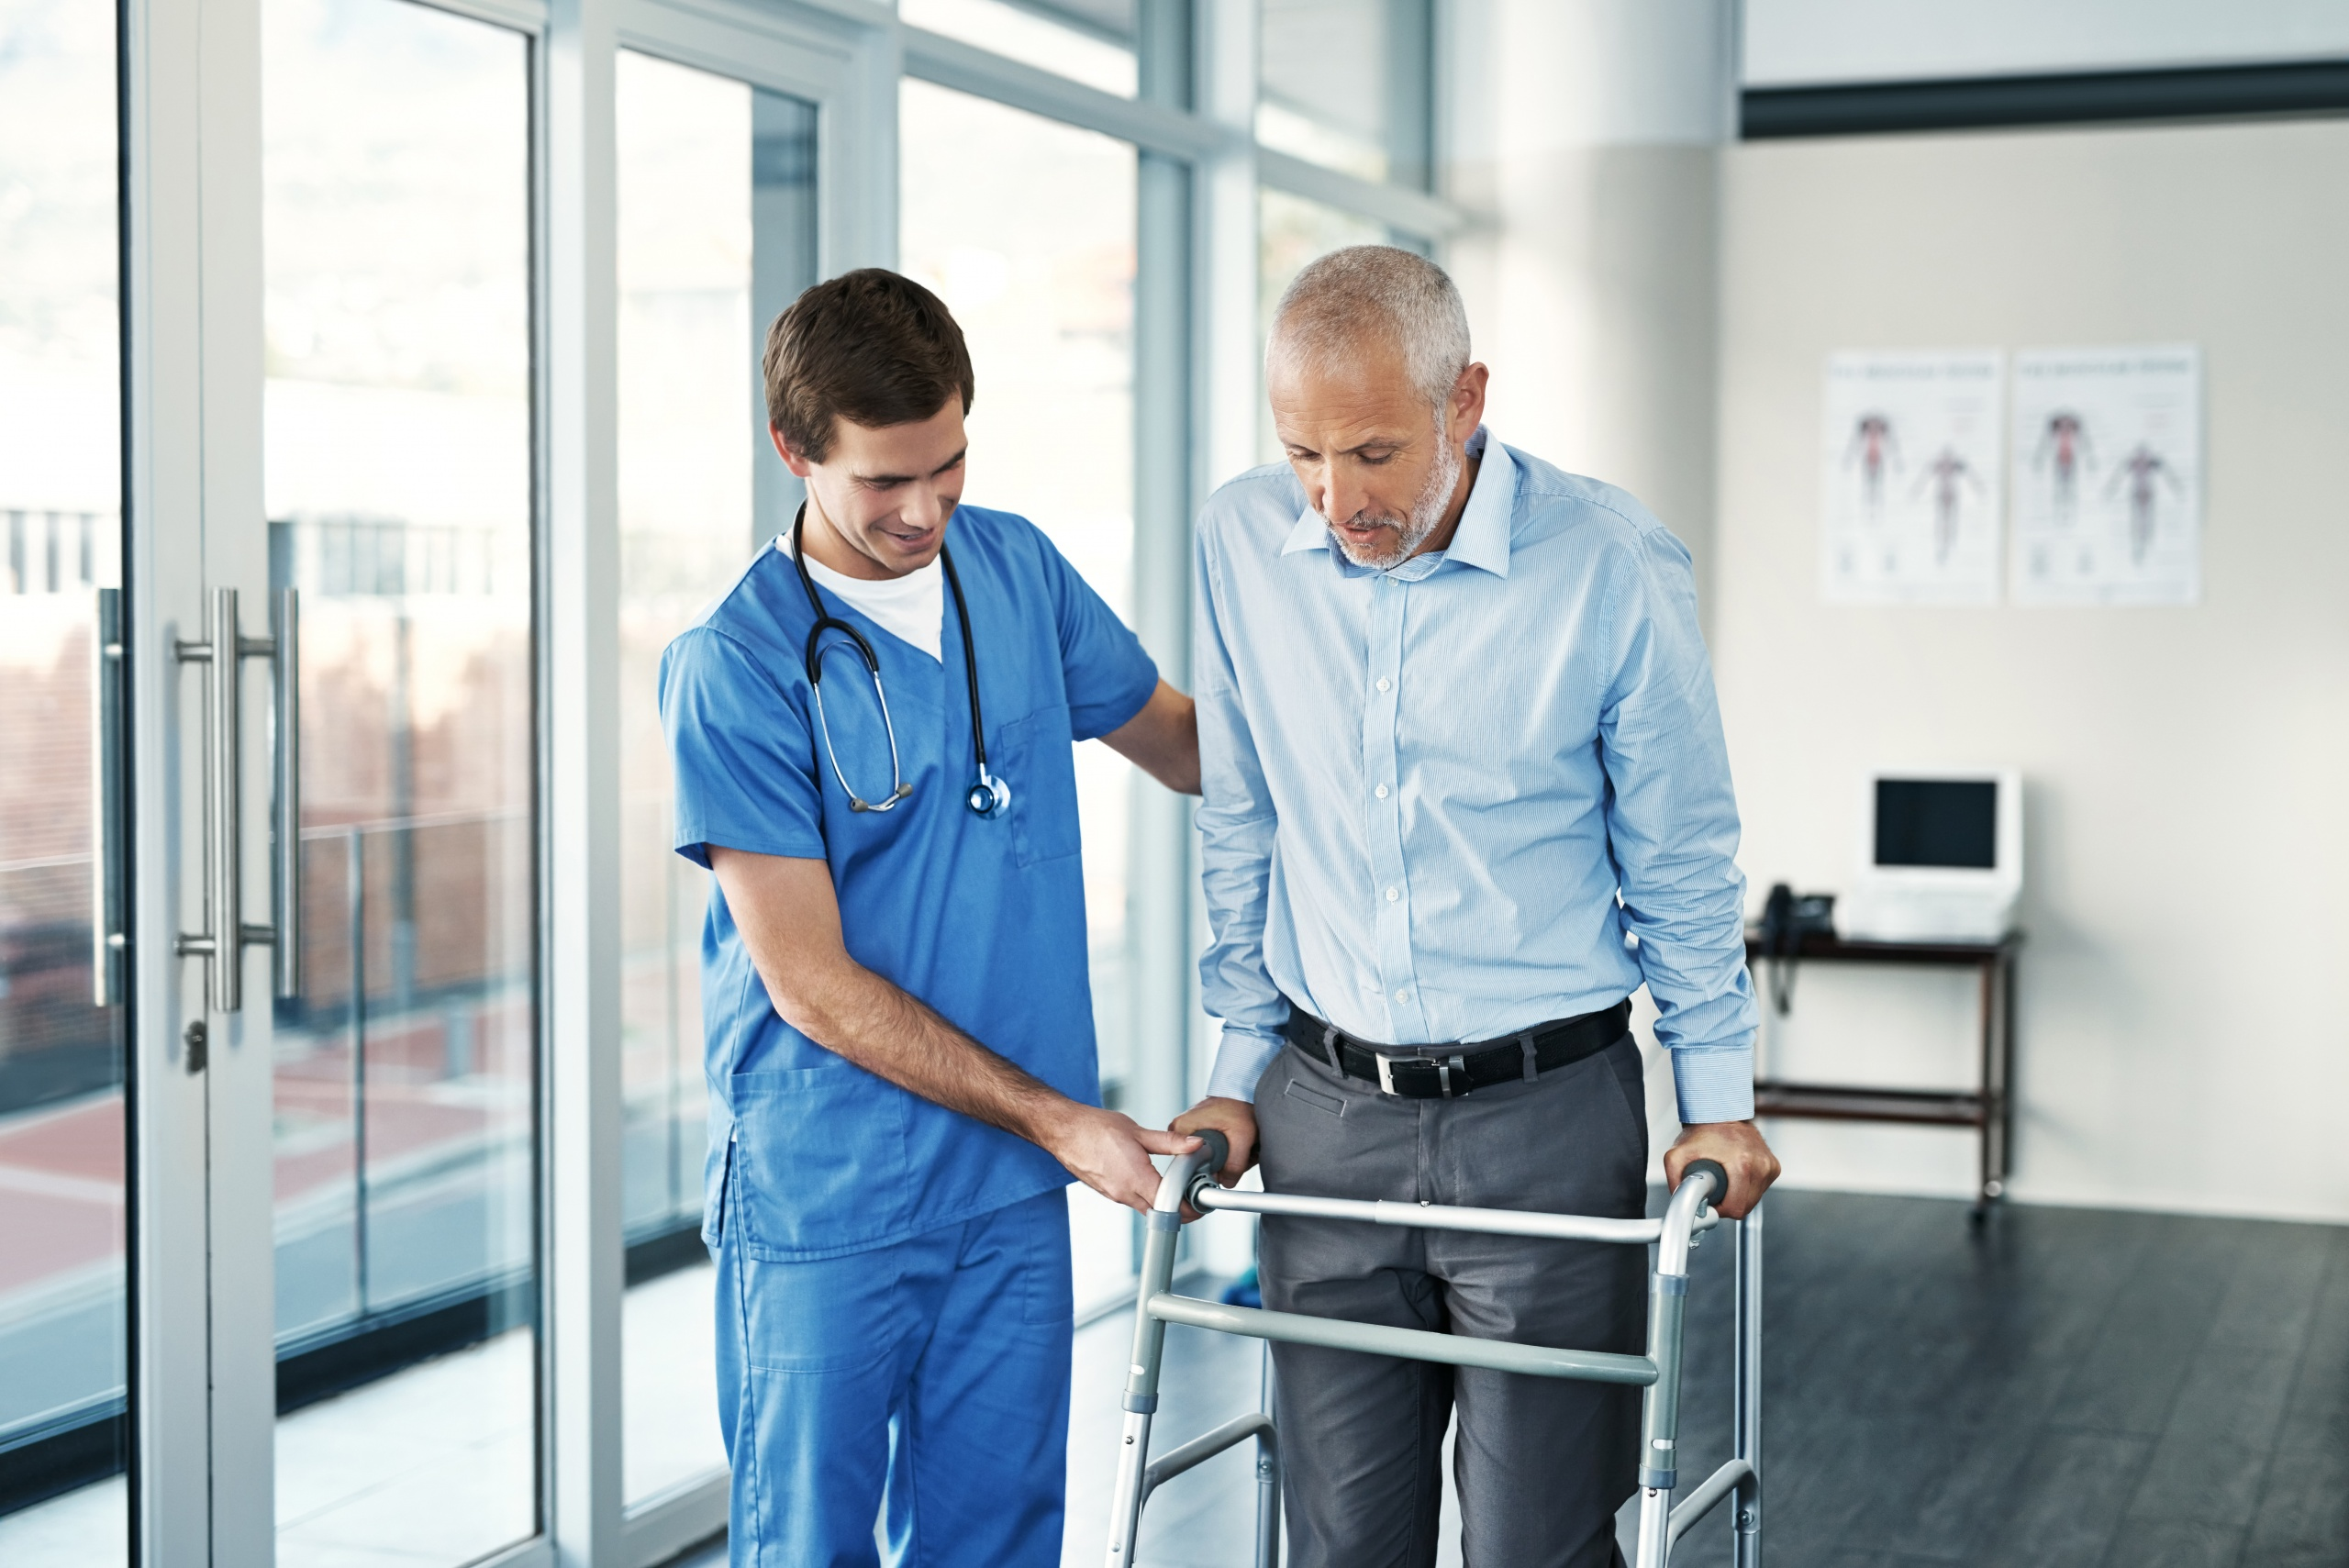 Shot of a male nurse assisting a senior patient with a walker